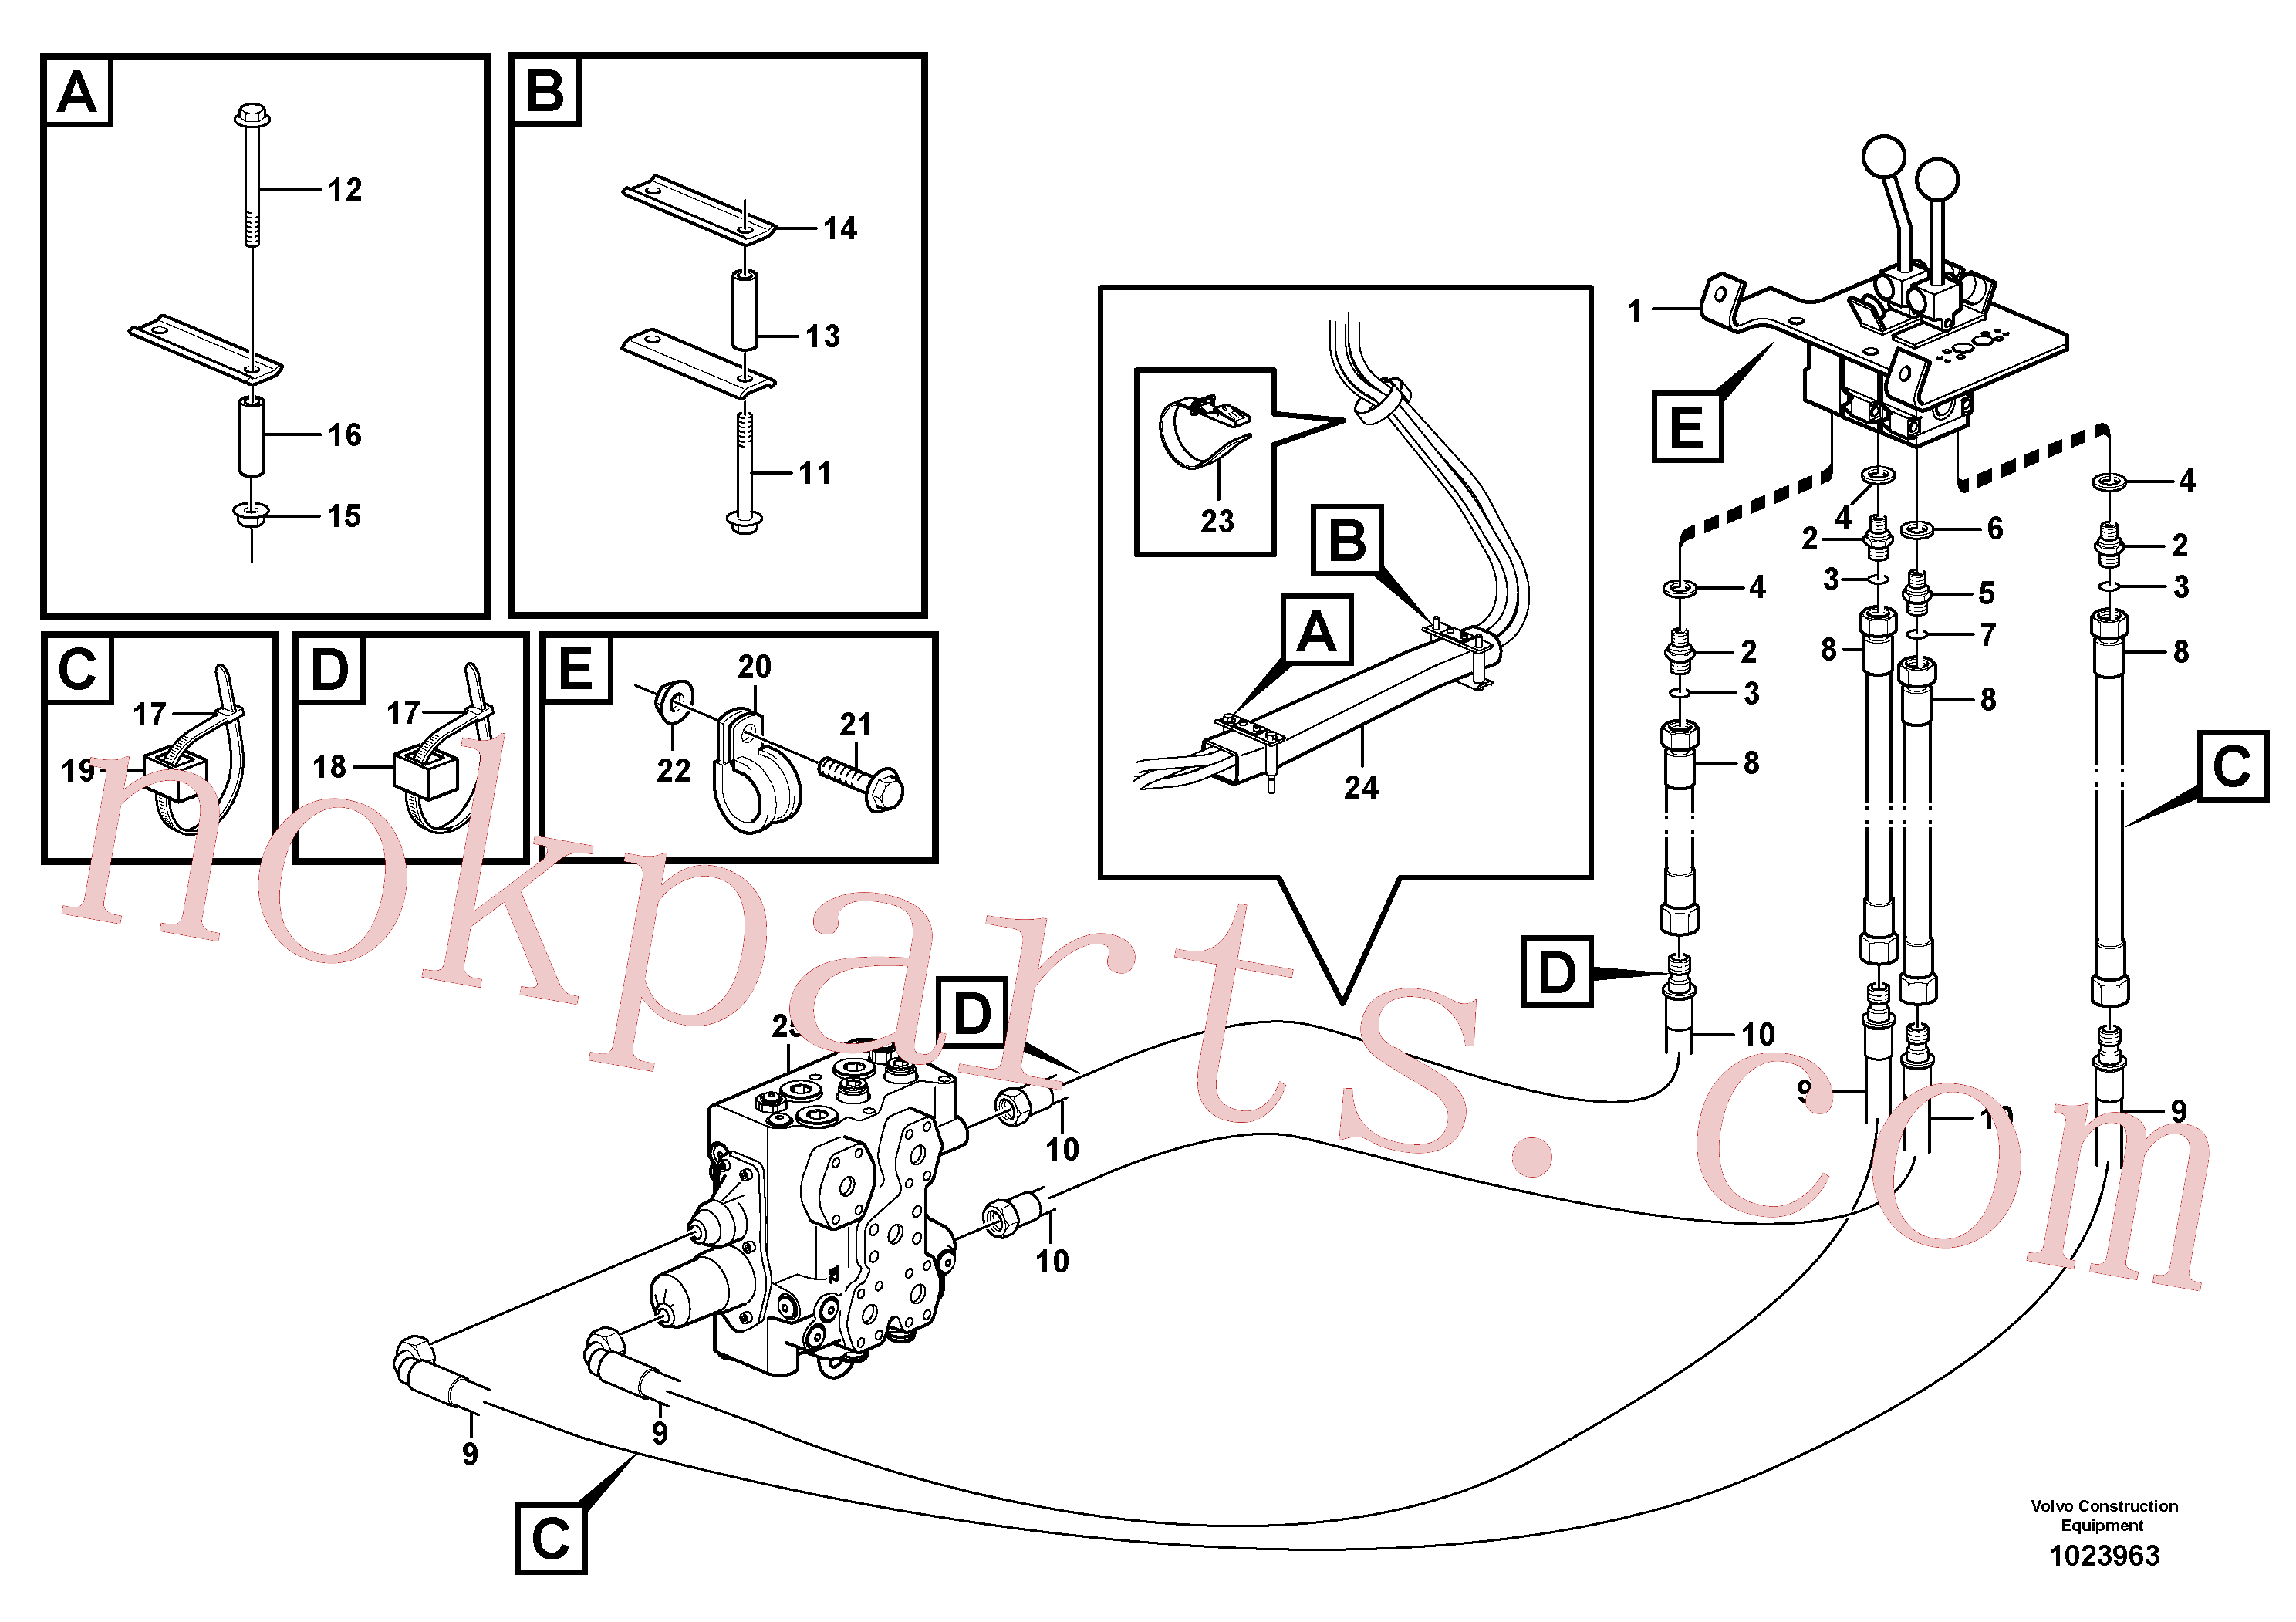 VOE11411803 for Volvo Control lines(1023963 assembly)